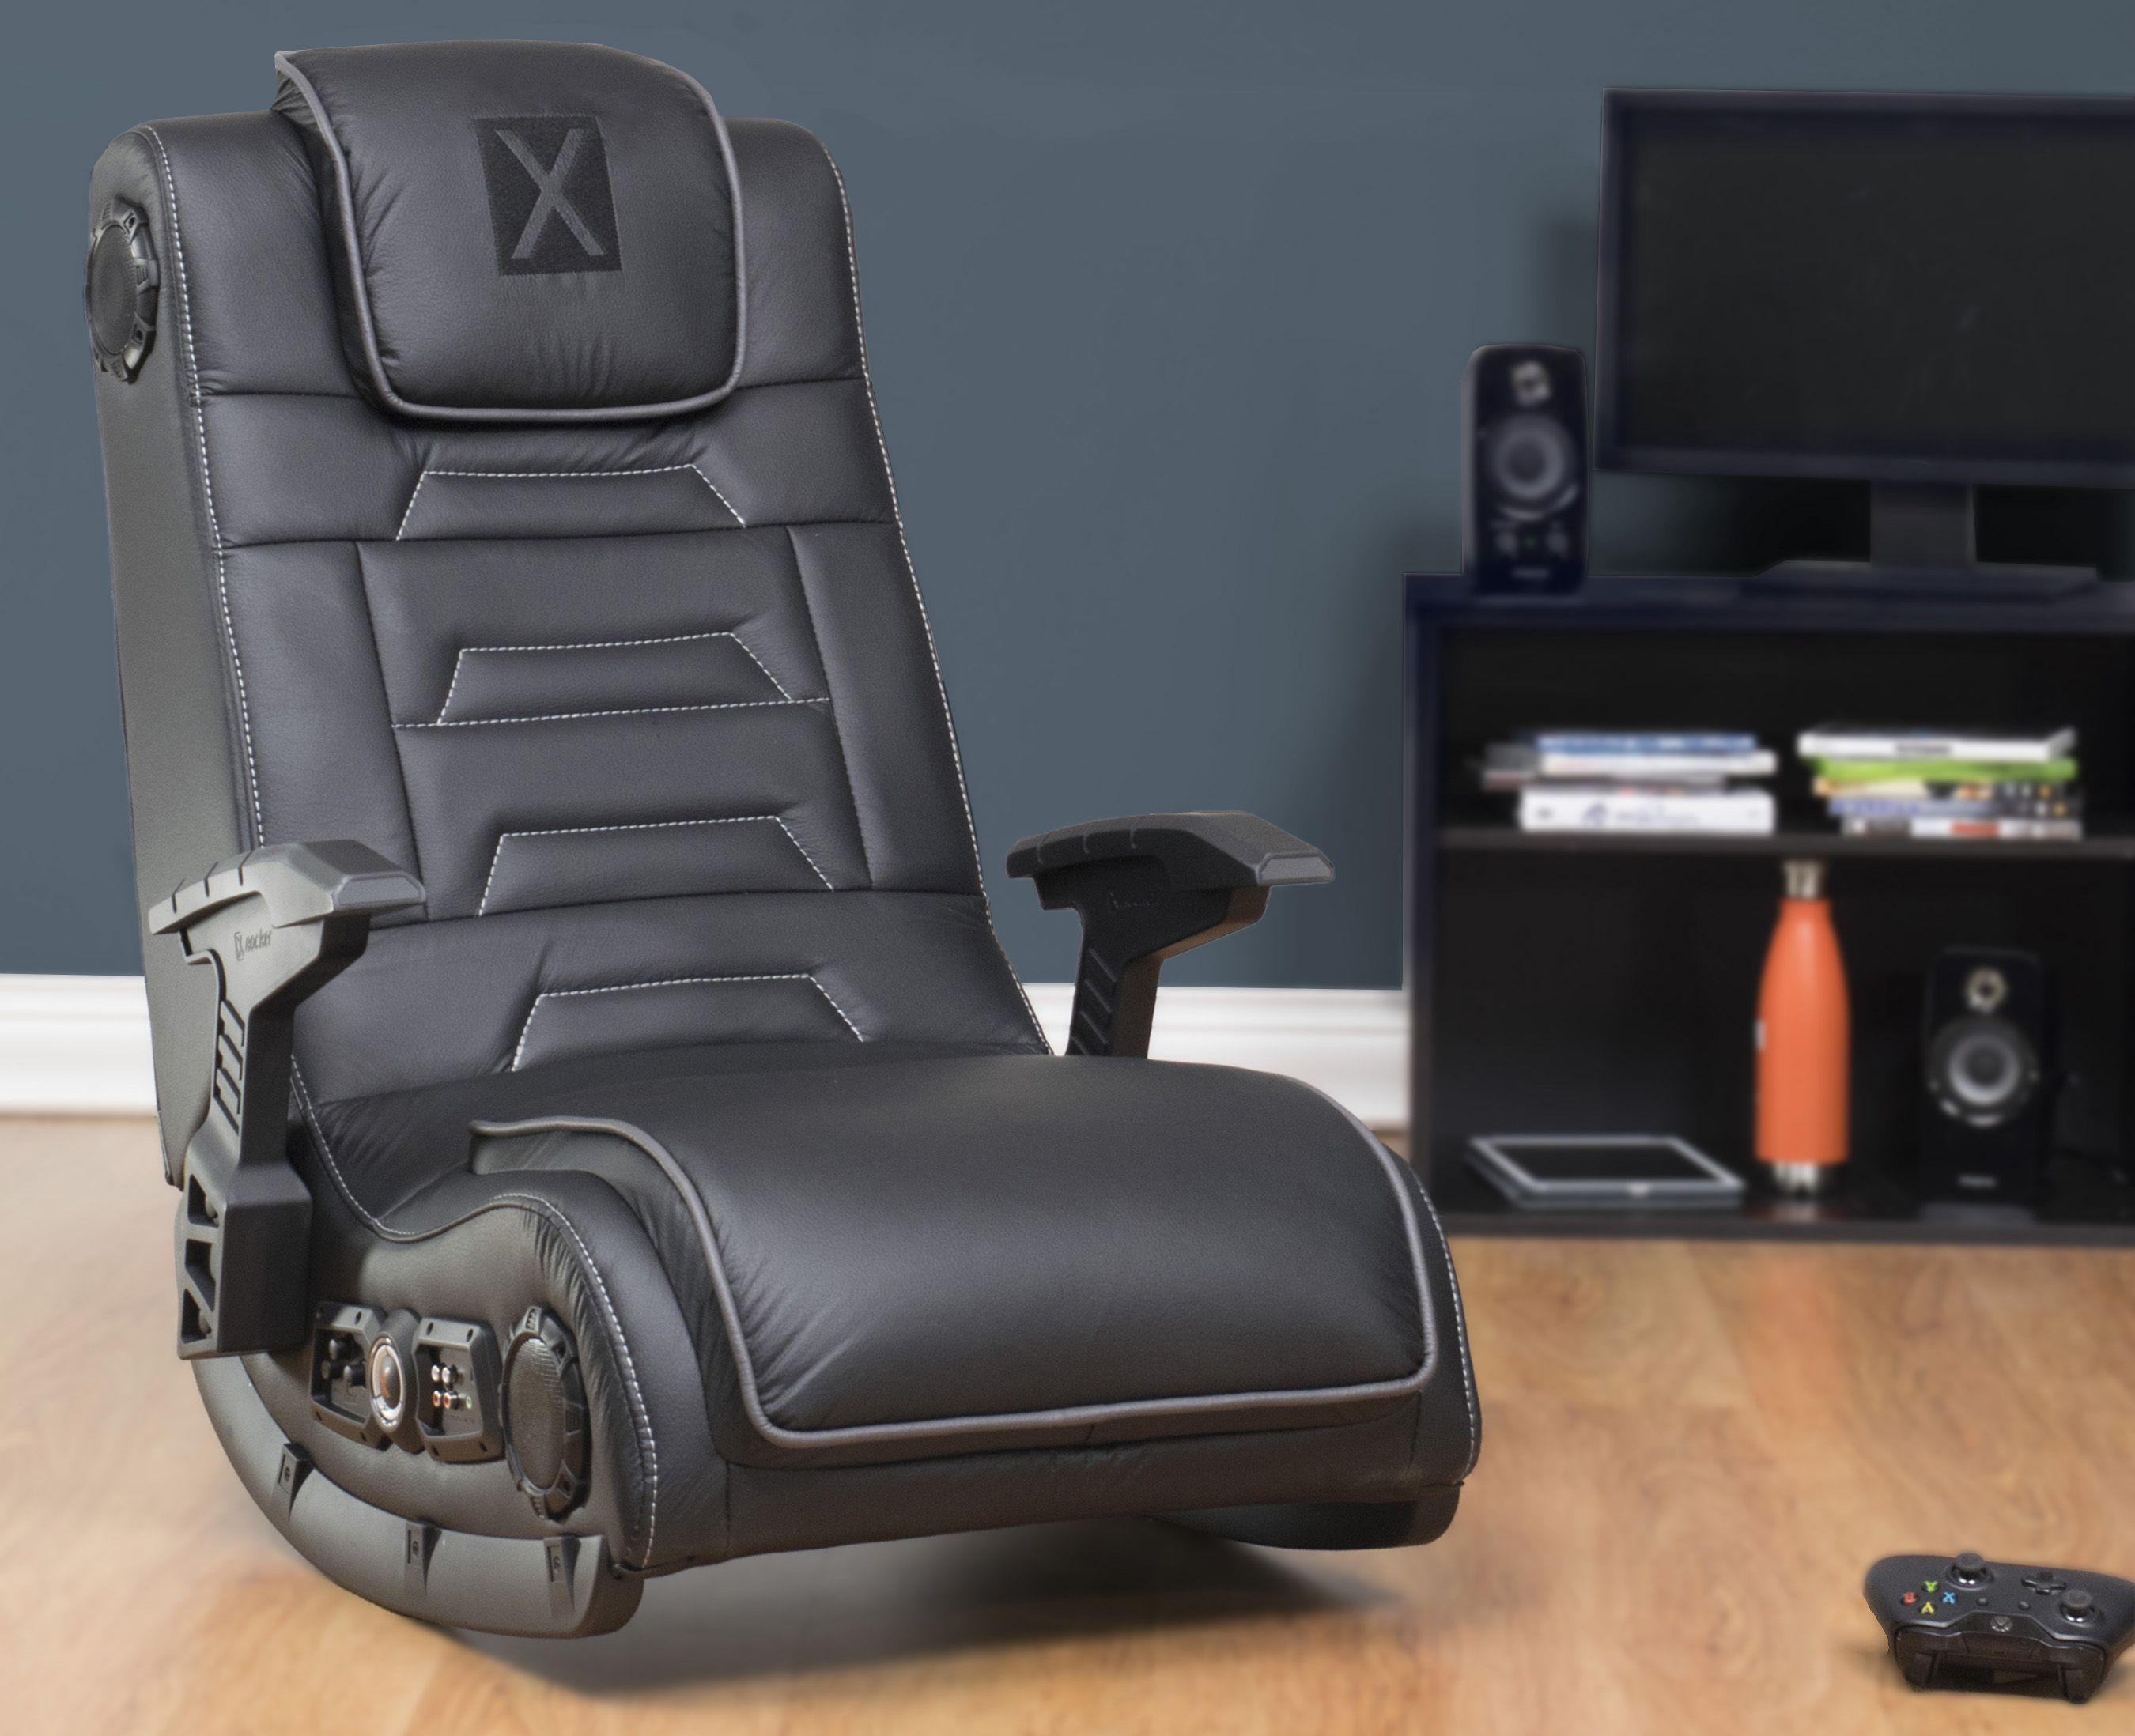 X Rocker Pro Series H3 Wireless Gaming Chair Rocker W 4 1 Speakers Walmart Com Gaming Chair Game Room Design Game Room Decor